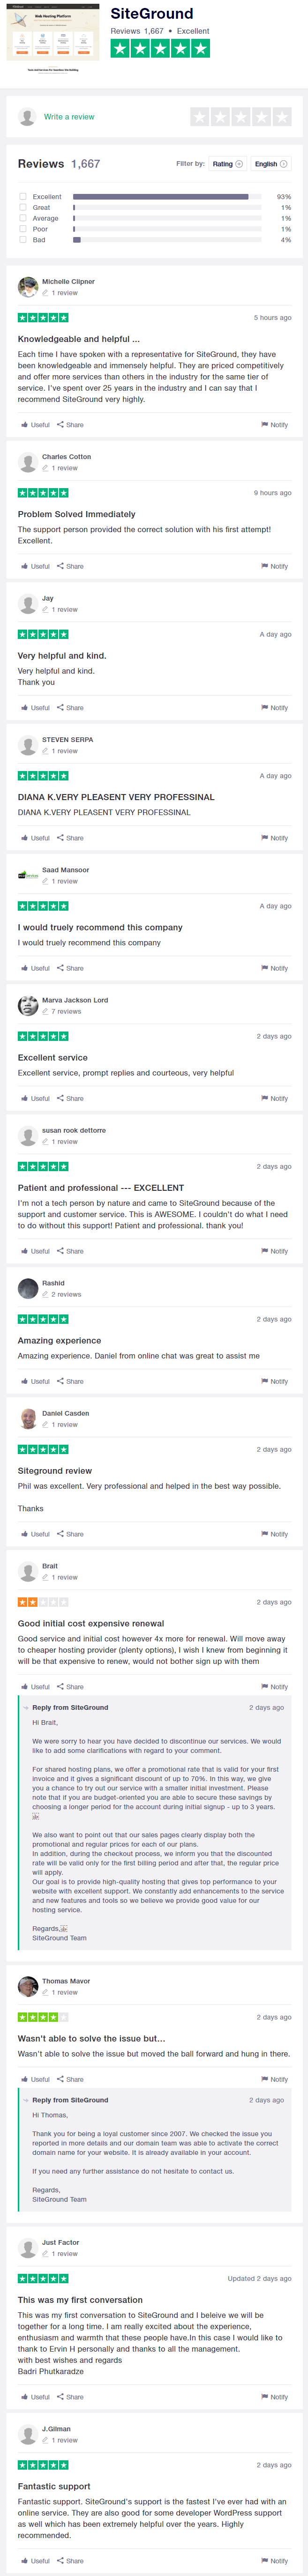 Opinions dels clients de SiteGround de Trustpilot